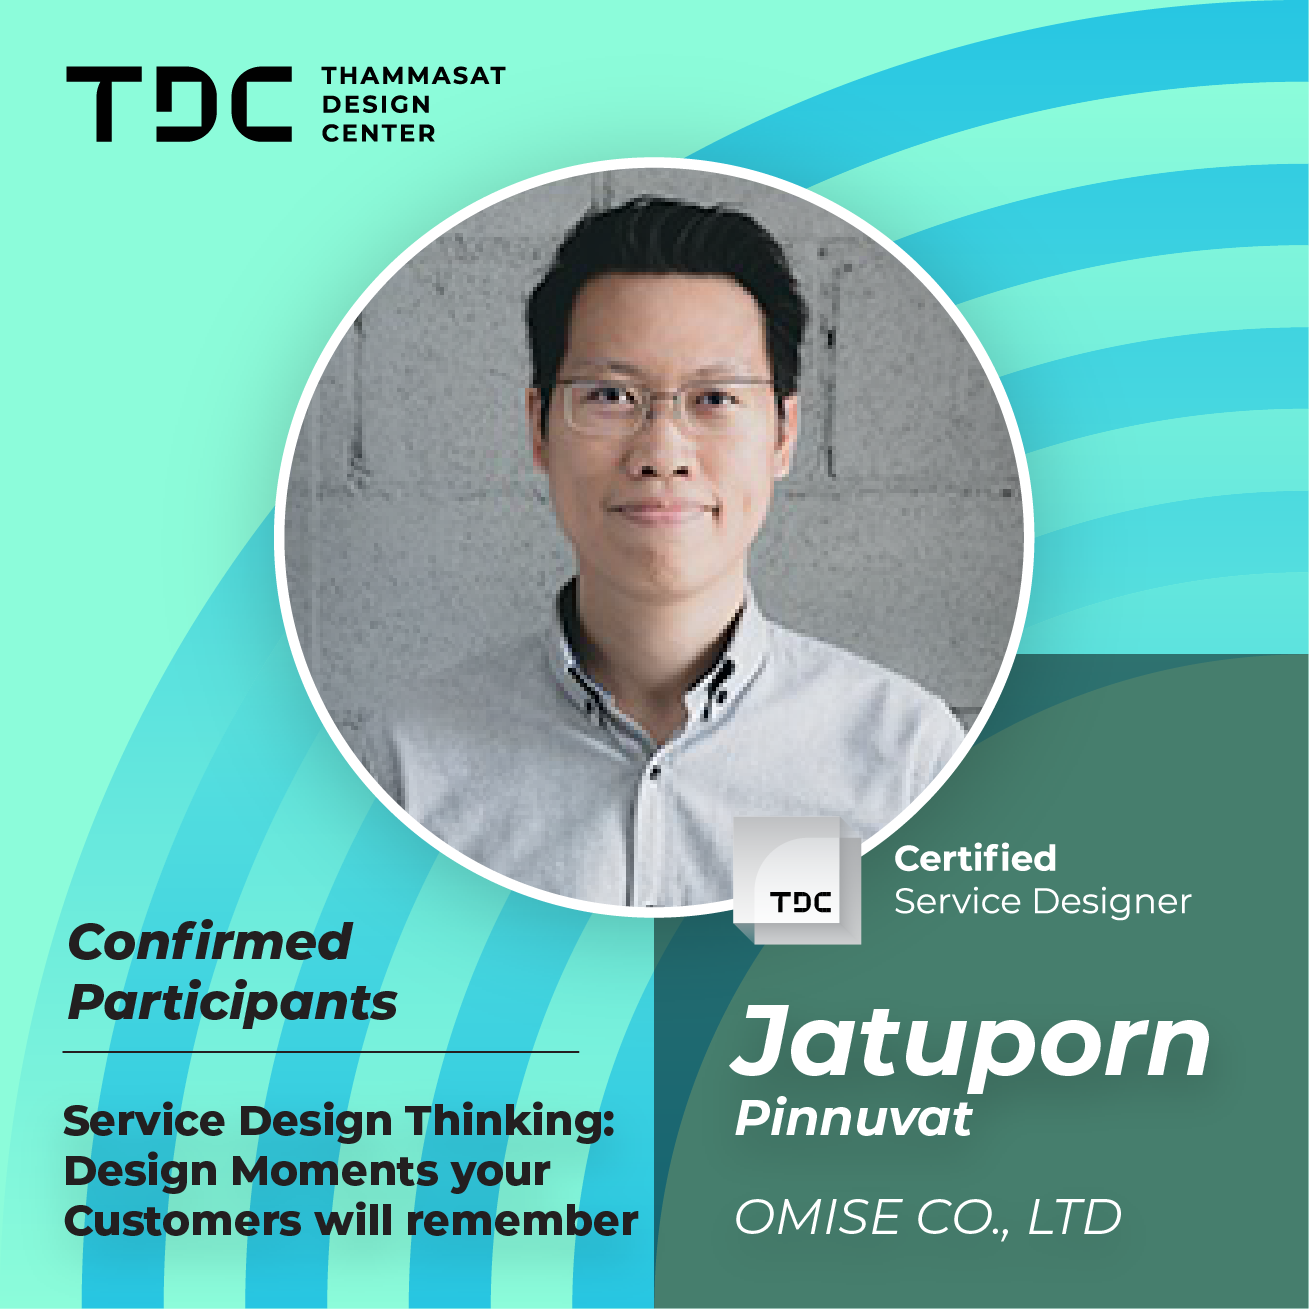 TDC Service Design [1] - Confirmed Participants-03